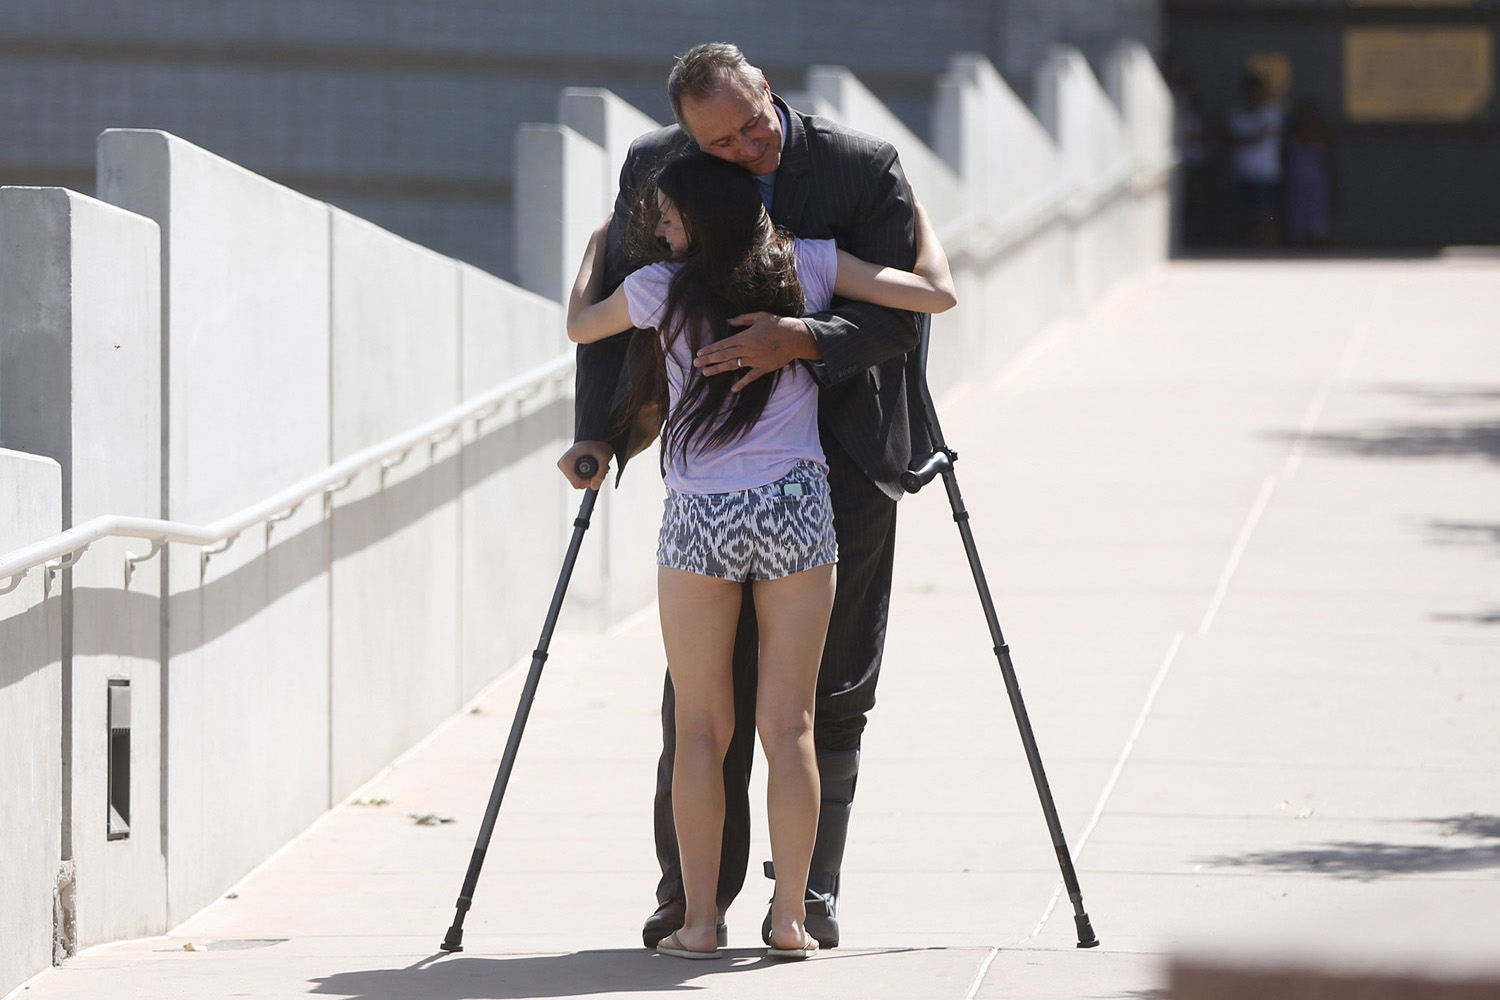 Former Attorney General Mark Shurtleff hugs his daughter Annie Shurtleff as he leaves after being booked at the Salt Lake County Metro Jail in South Salt Lake City, Utah on July 15, 2014.